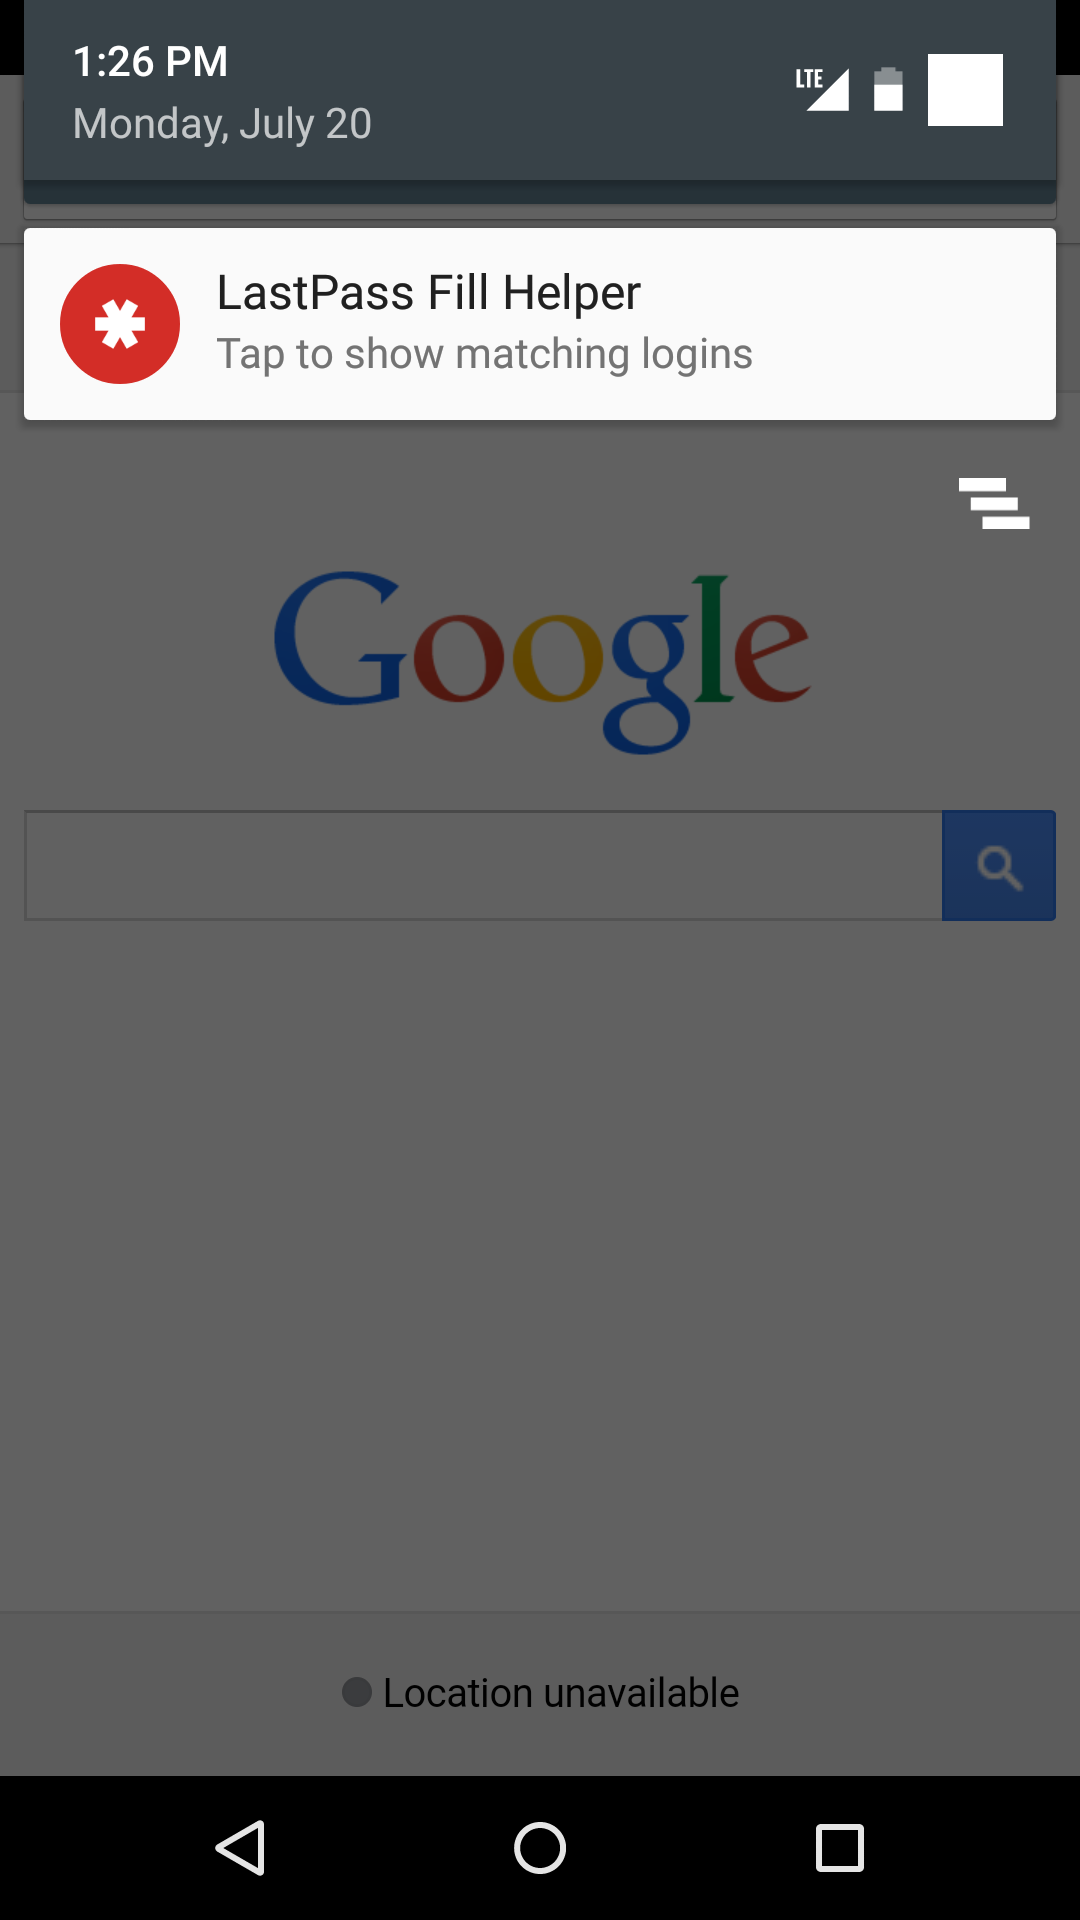 Does LastPass for Android work well with Chrome? - Quora